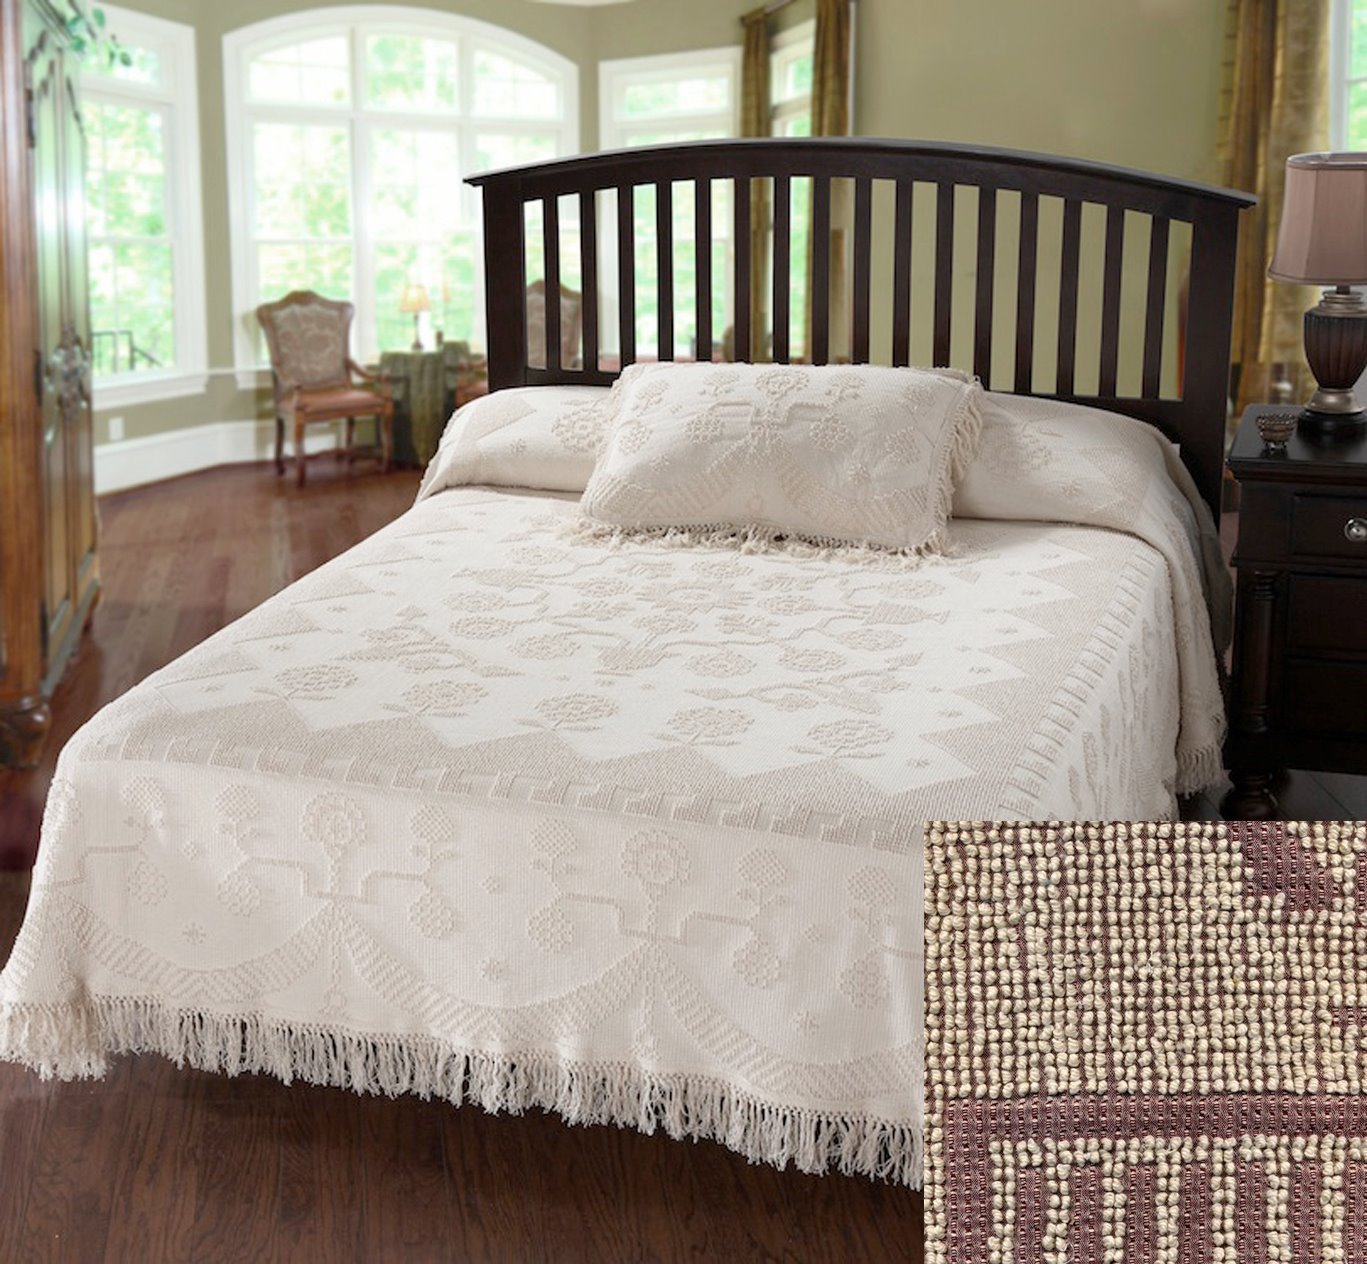 George Washington Bedspread Full Maroon